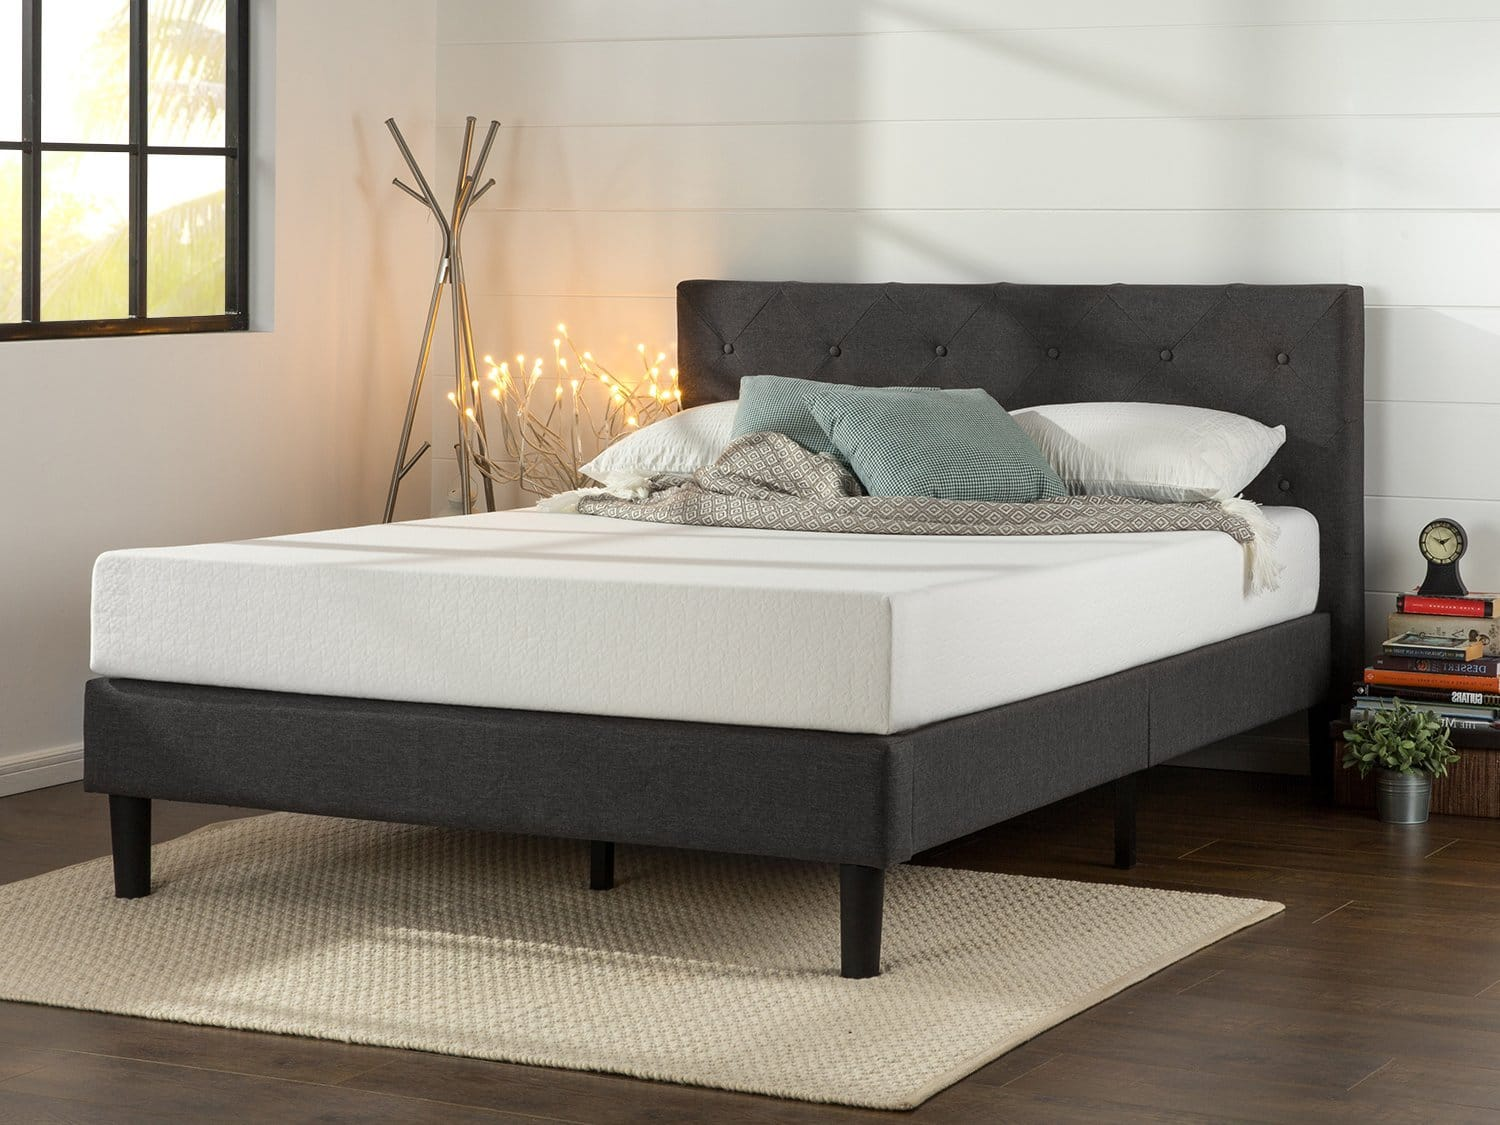 Superb Zinus Upholstered Diamond Stitched Platform Bed Queen Slickdeals net